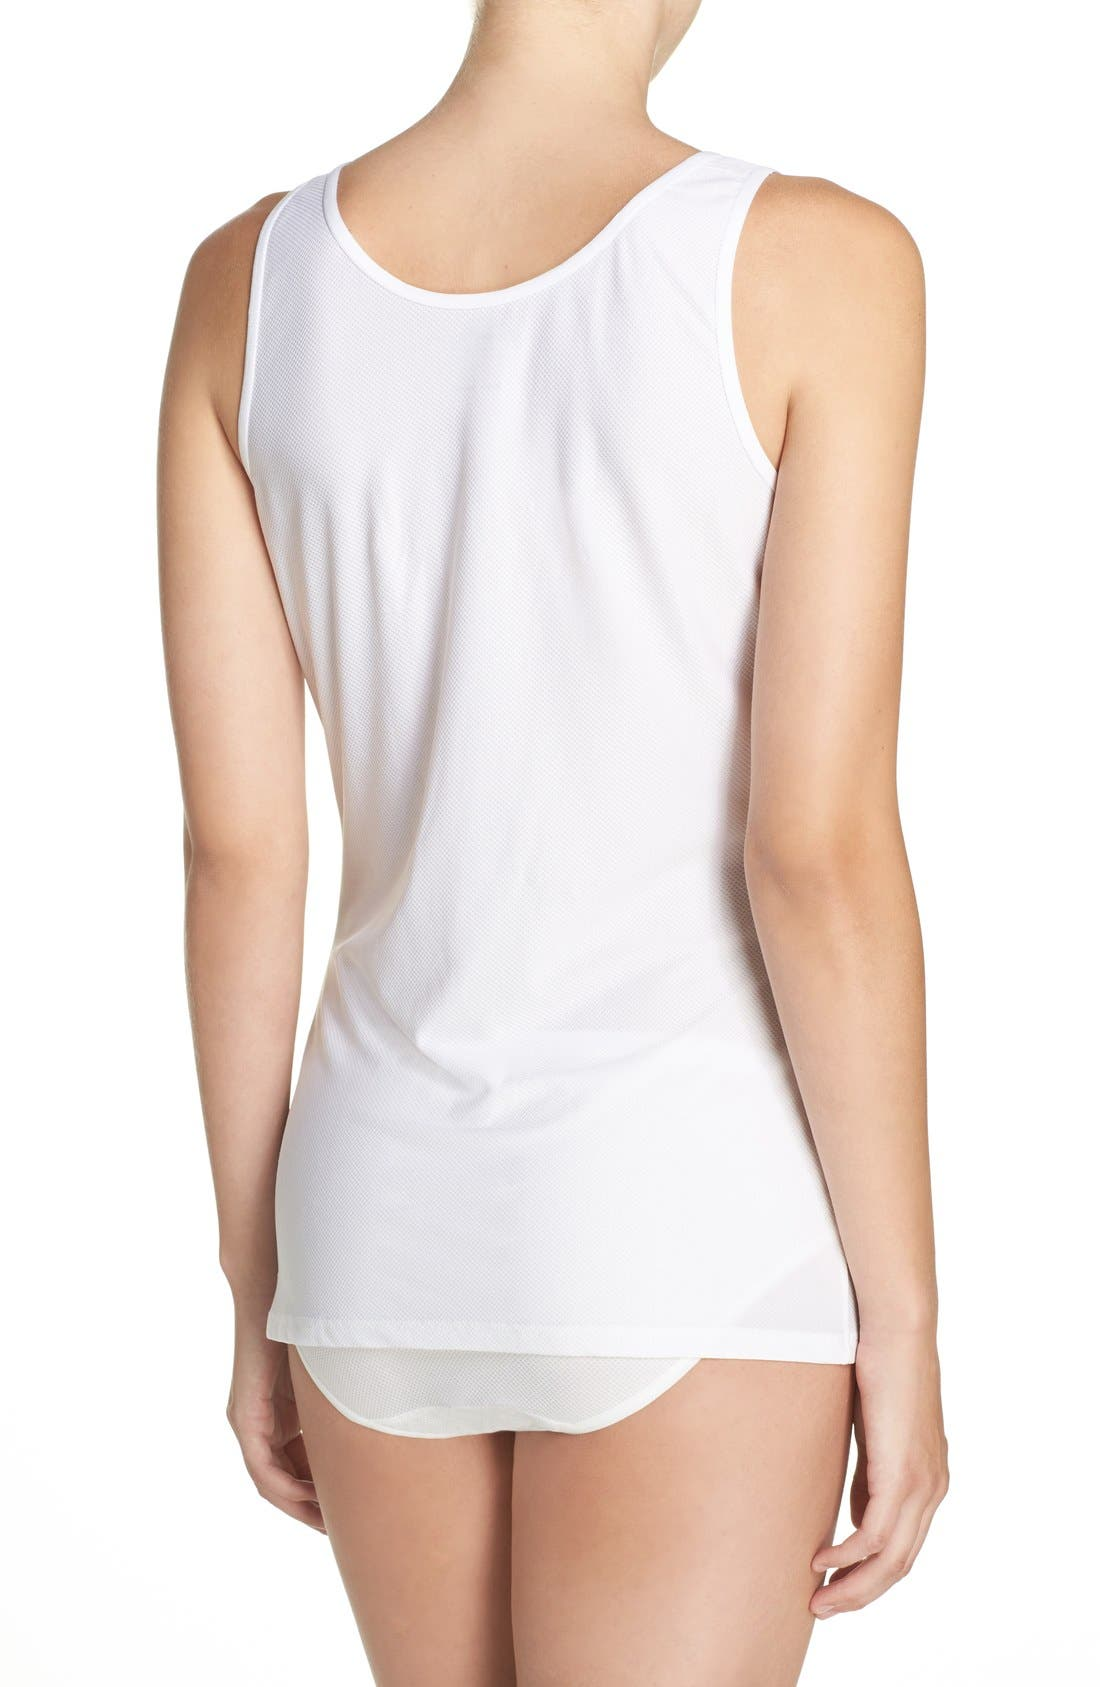 Give-N-Go<sup>®</sup> Sport Tank,                             Alternate thumbnail 5, color,                             White